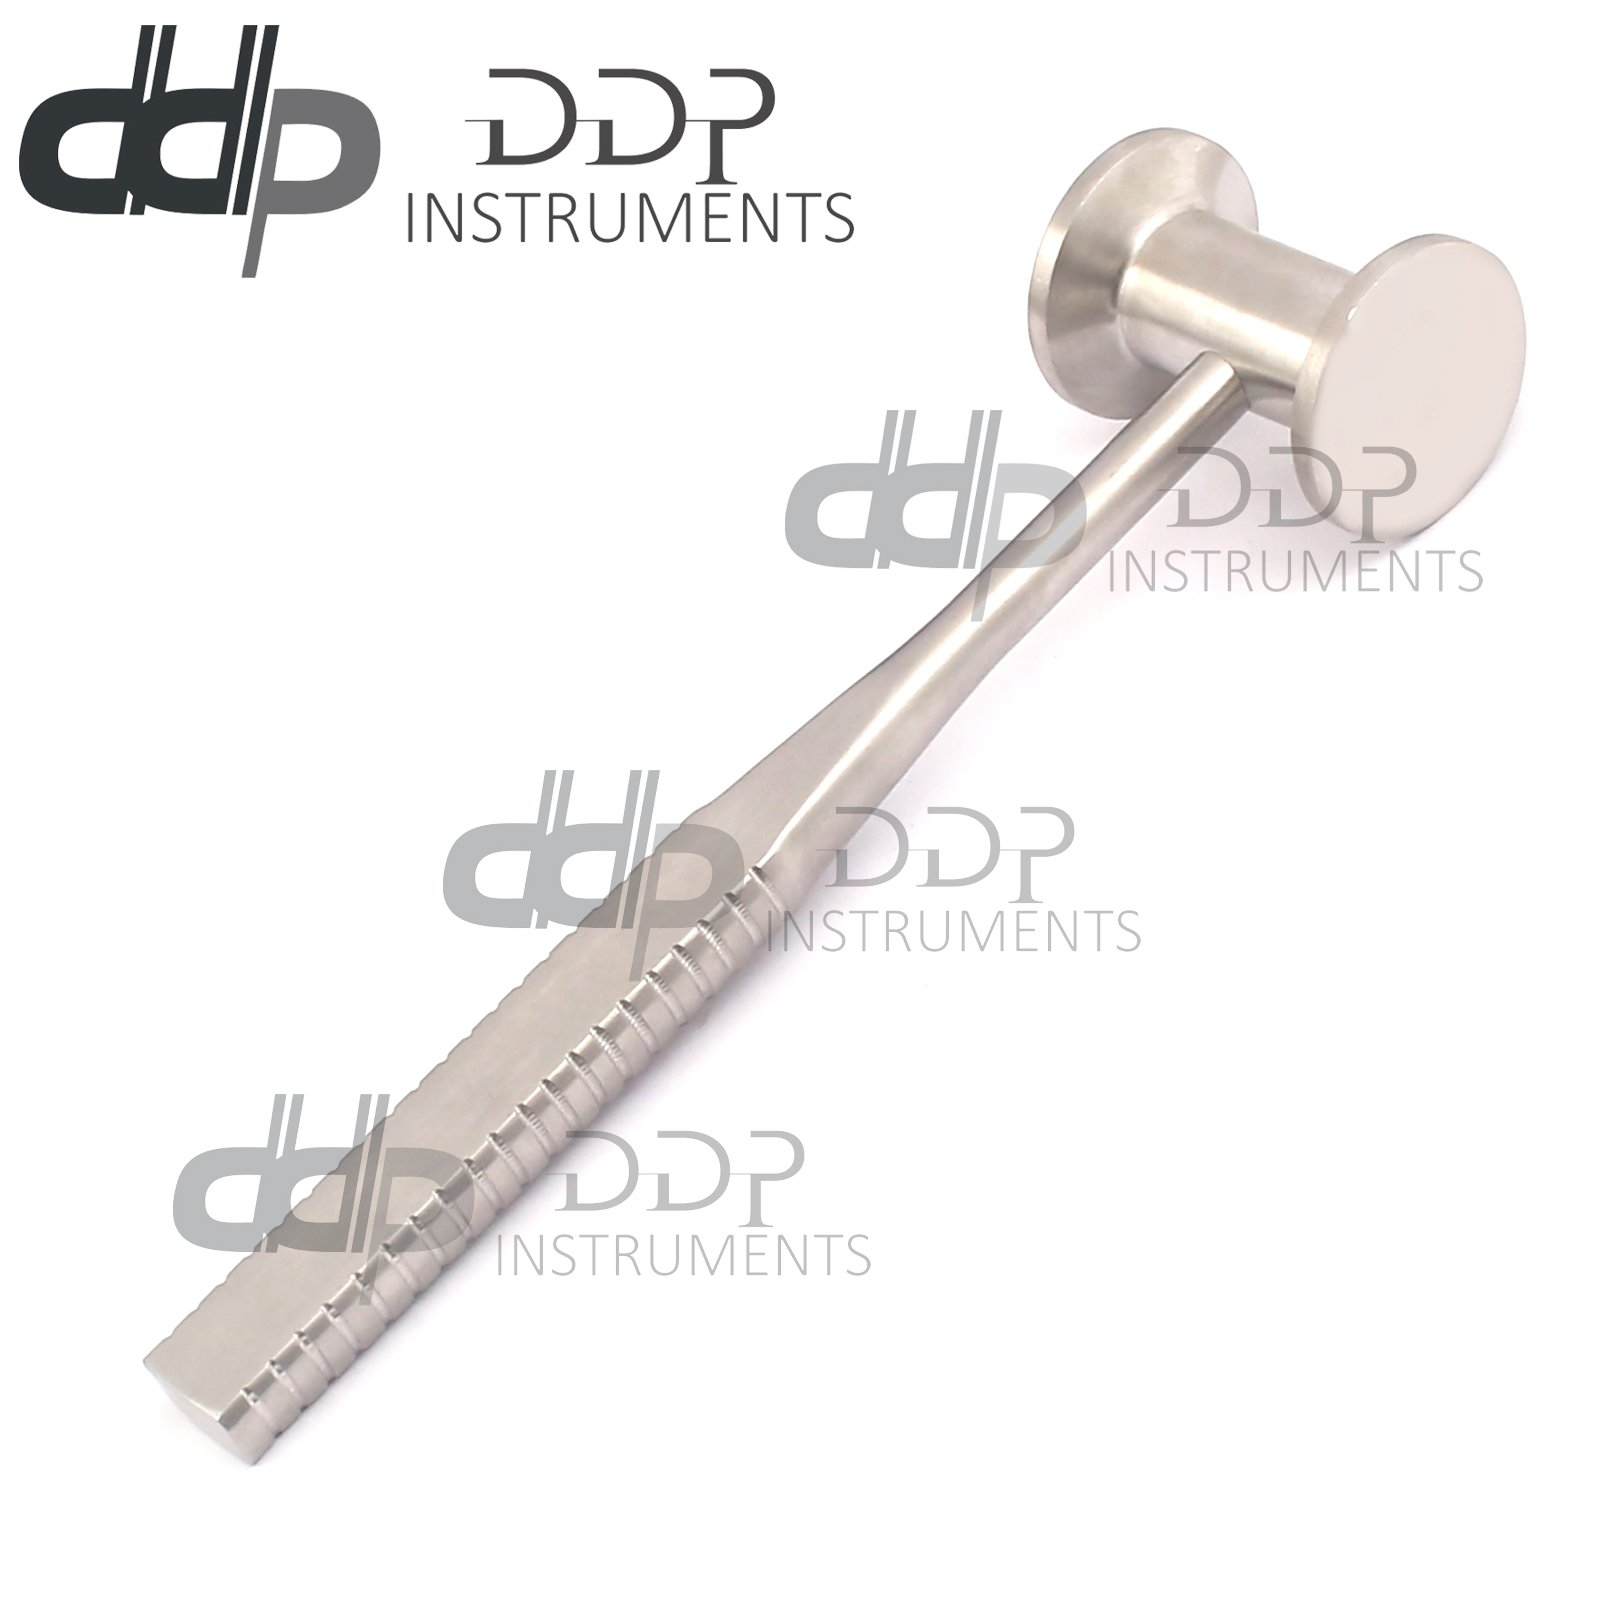 DDP Bergman Bone Mallet 300 Grams 24.5Cm Veterinary Orthopedic Instruments by DDP (Image #1)